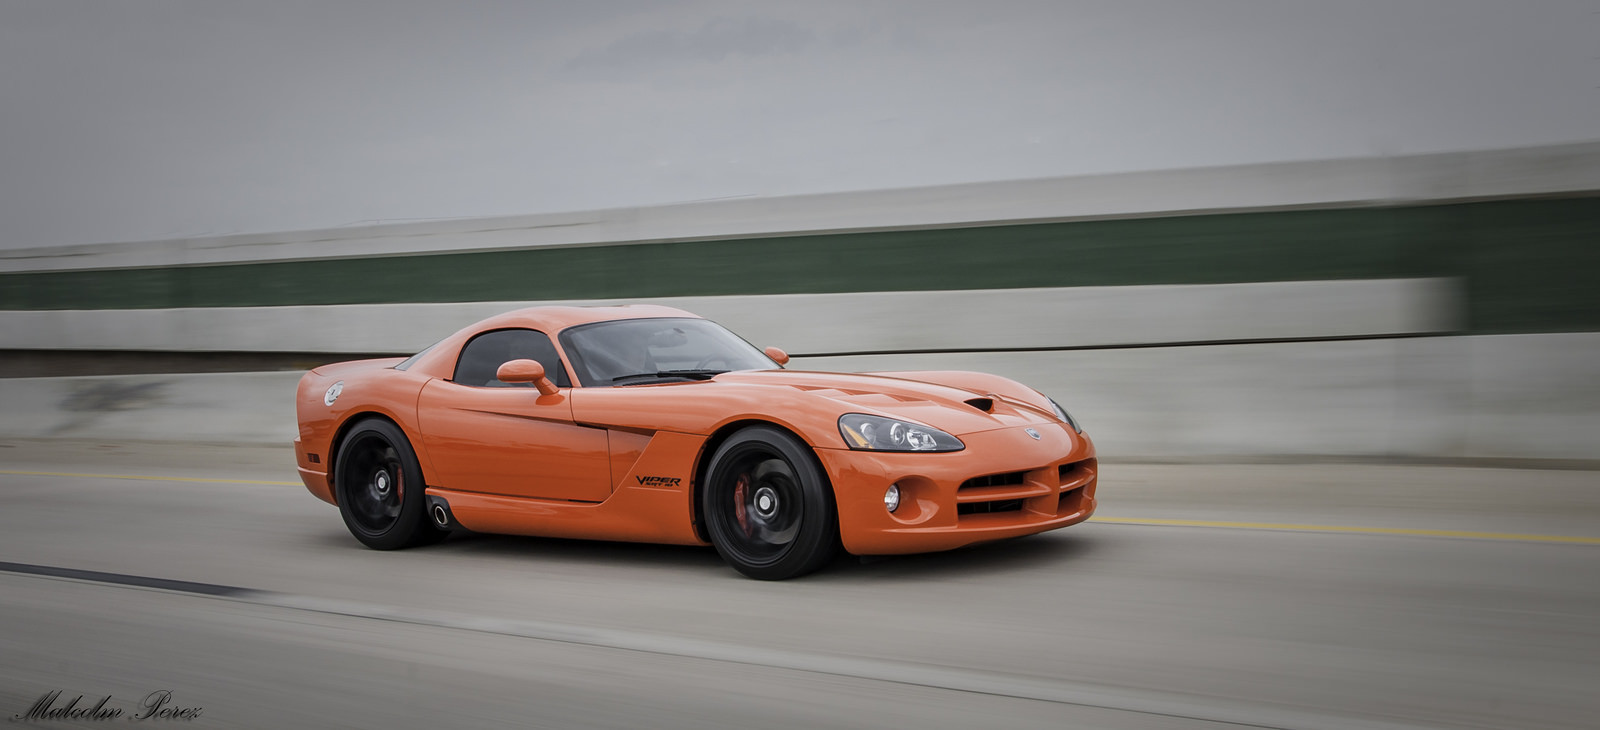 Very Viper Orange 2008 Dodge Viper SRT-10